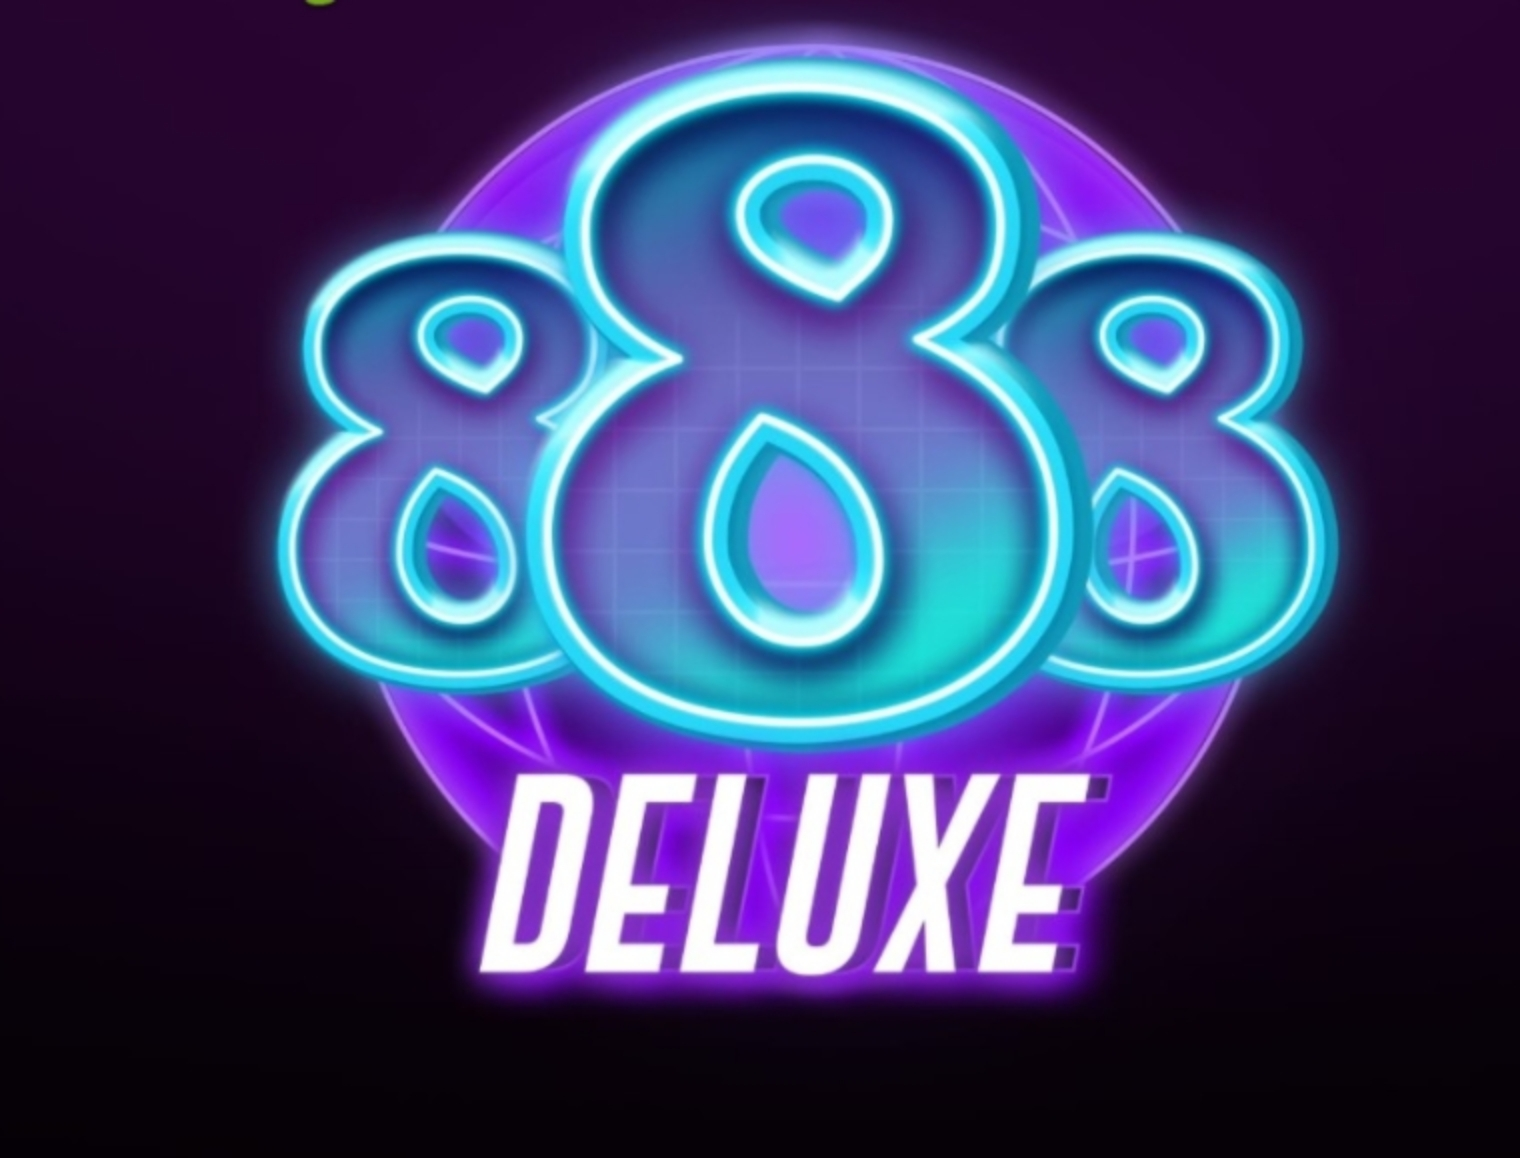 888 Deluxe Online Slot Demo Game by Woohoo